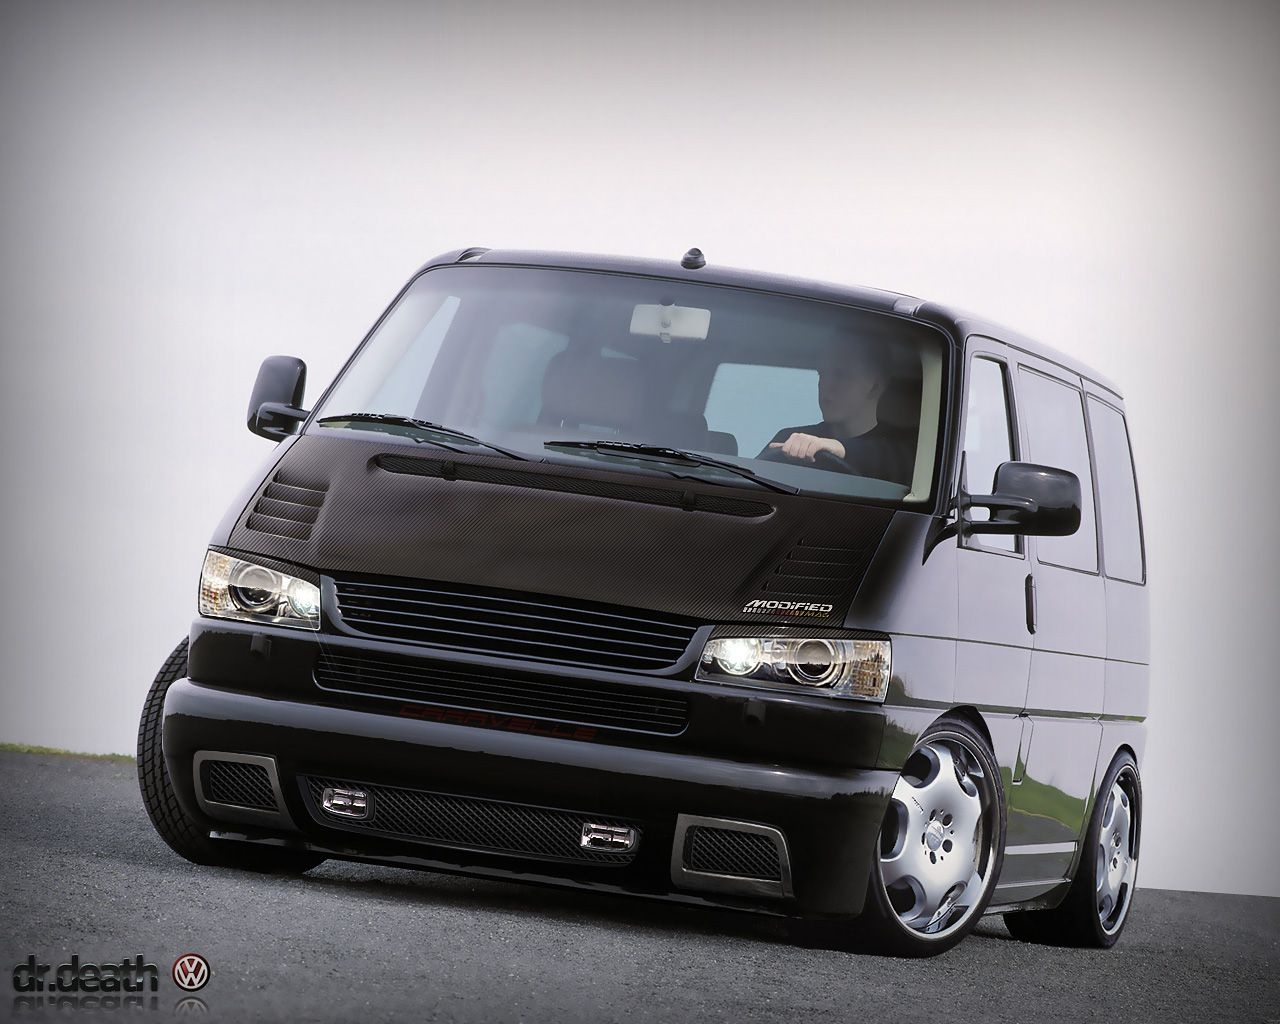 vw t4 caravelle photo 01 volkswagen buses and eurovans. Black Bedroom Furniture Sets. Home Design Ideas